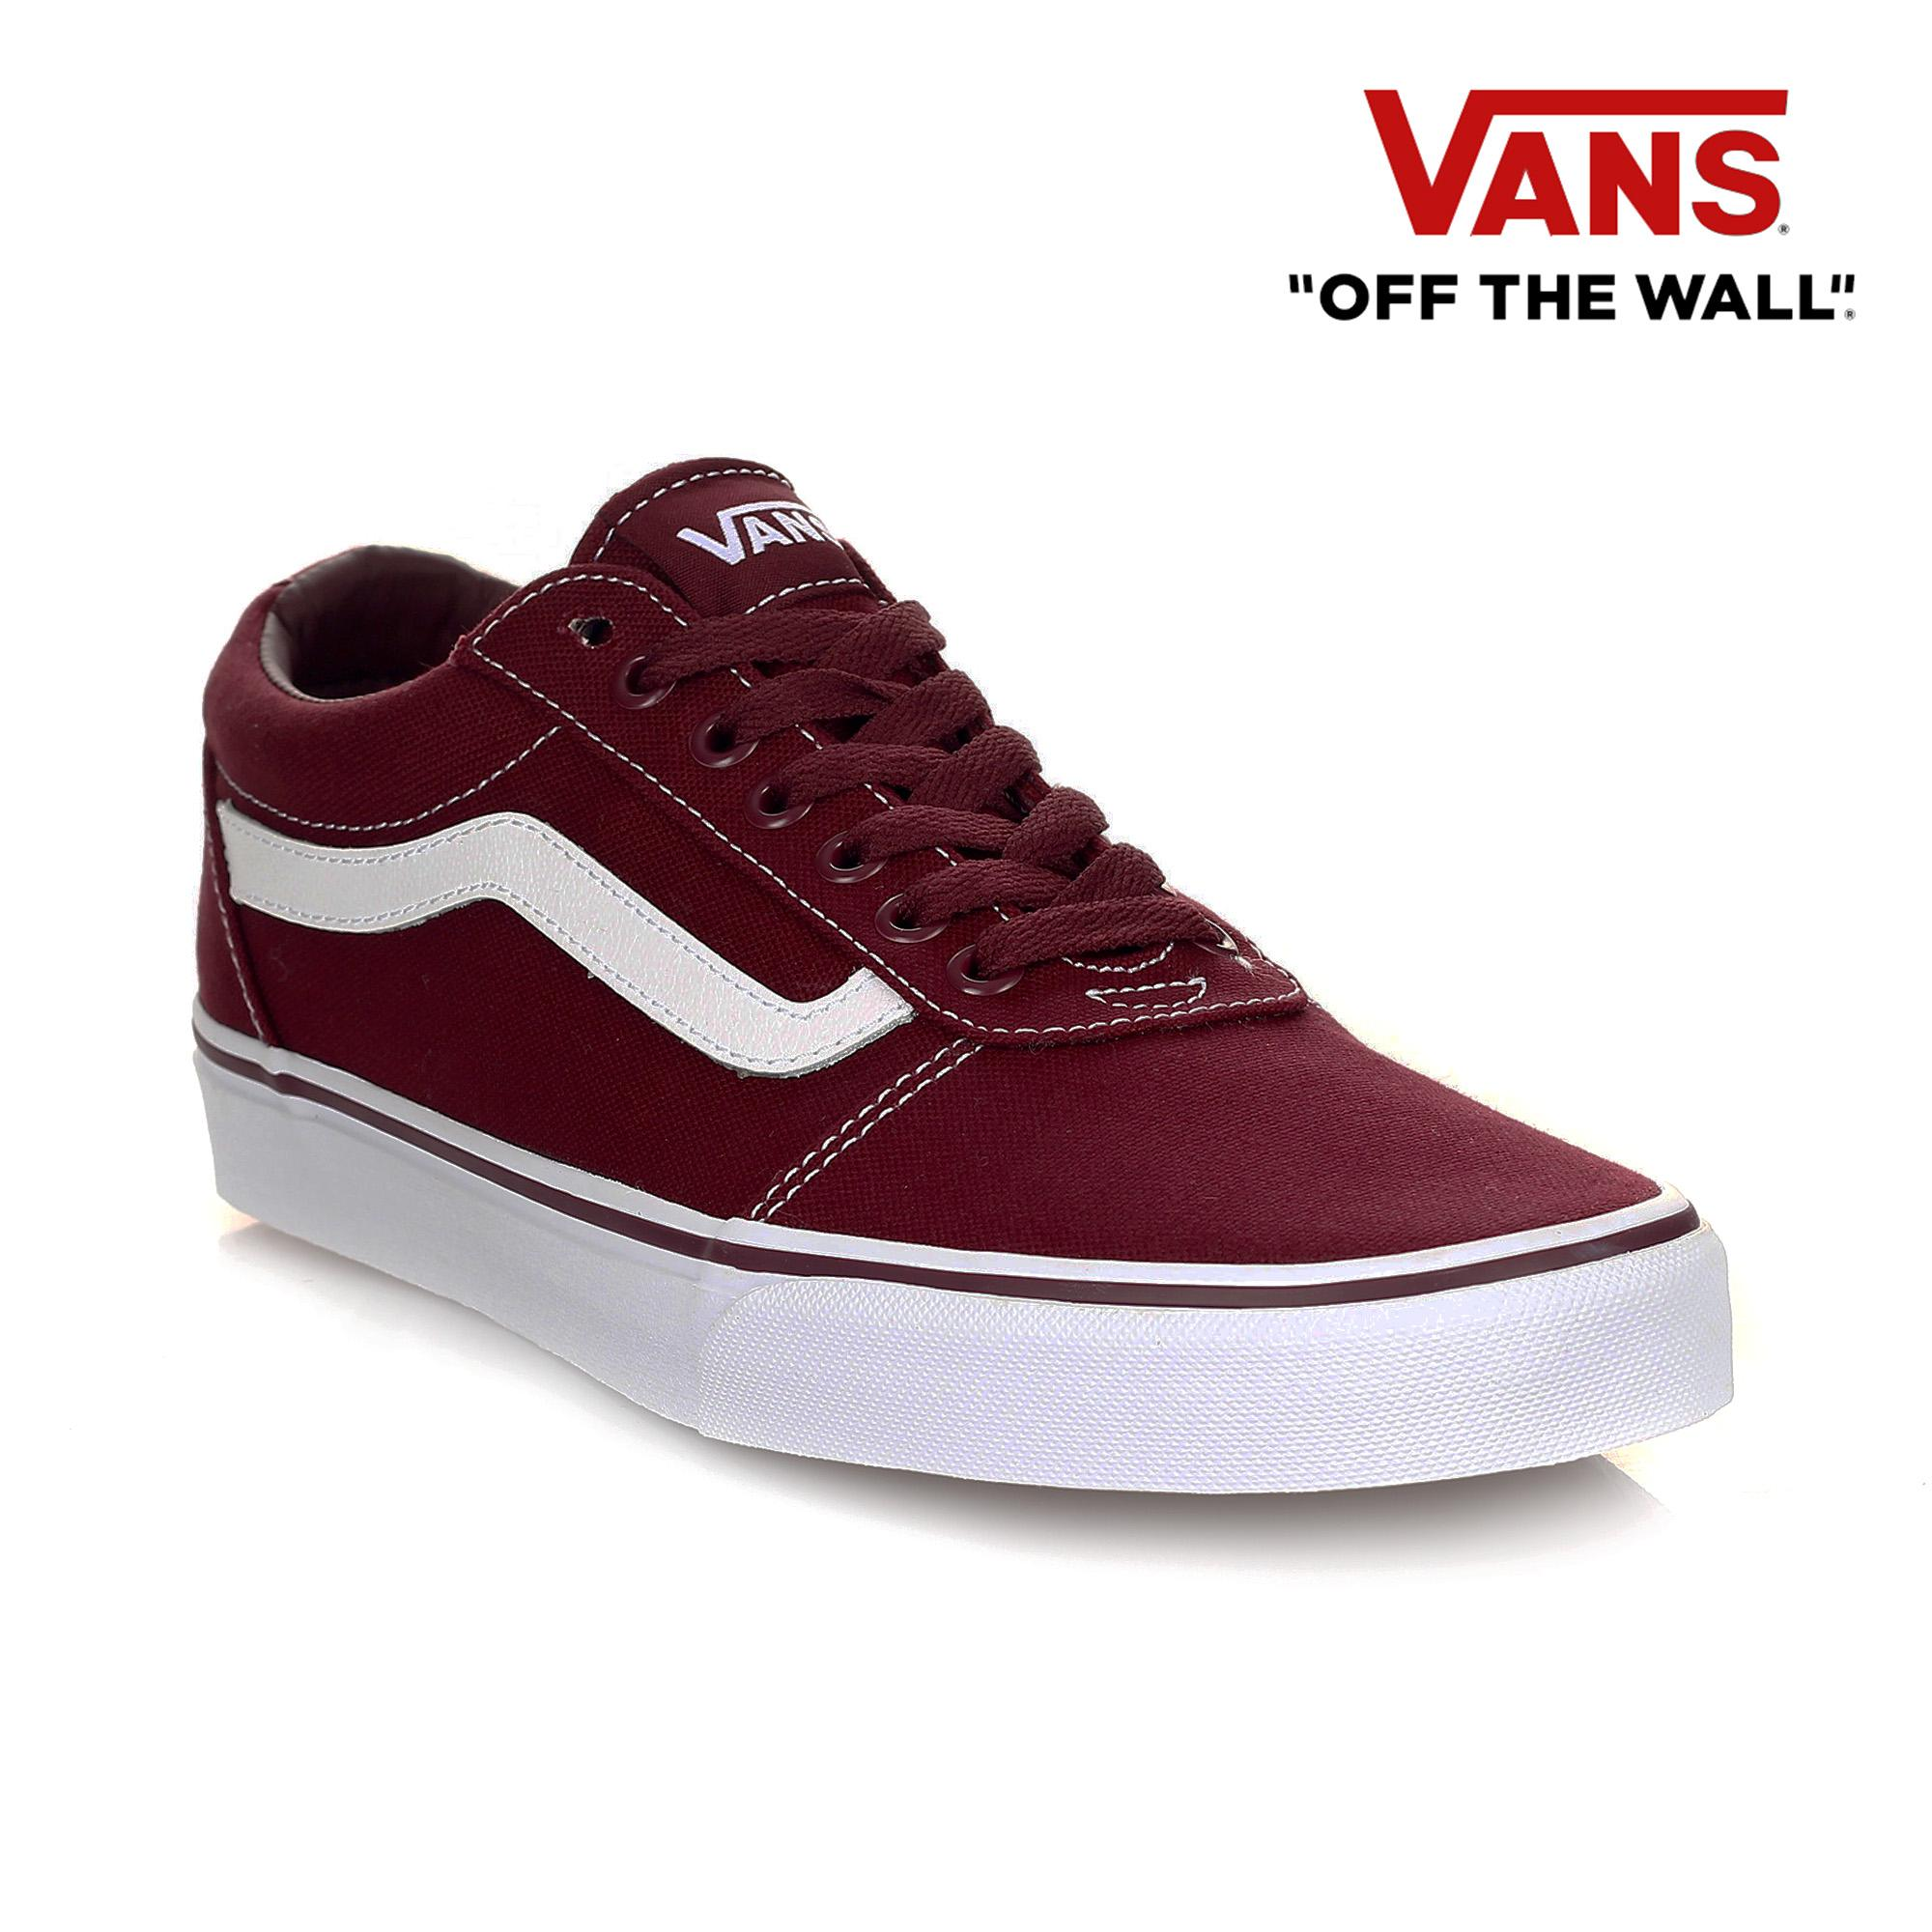 1fc76e76016b84 Vans Shoes for Men Philippines - Vans Men s Shoes for sale - prices ...